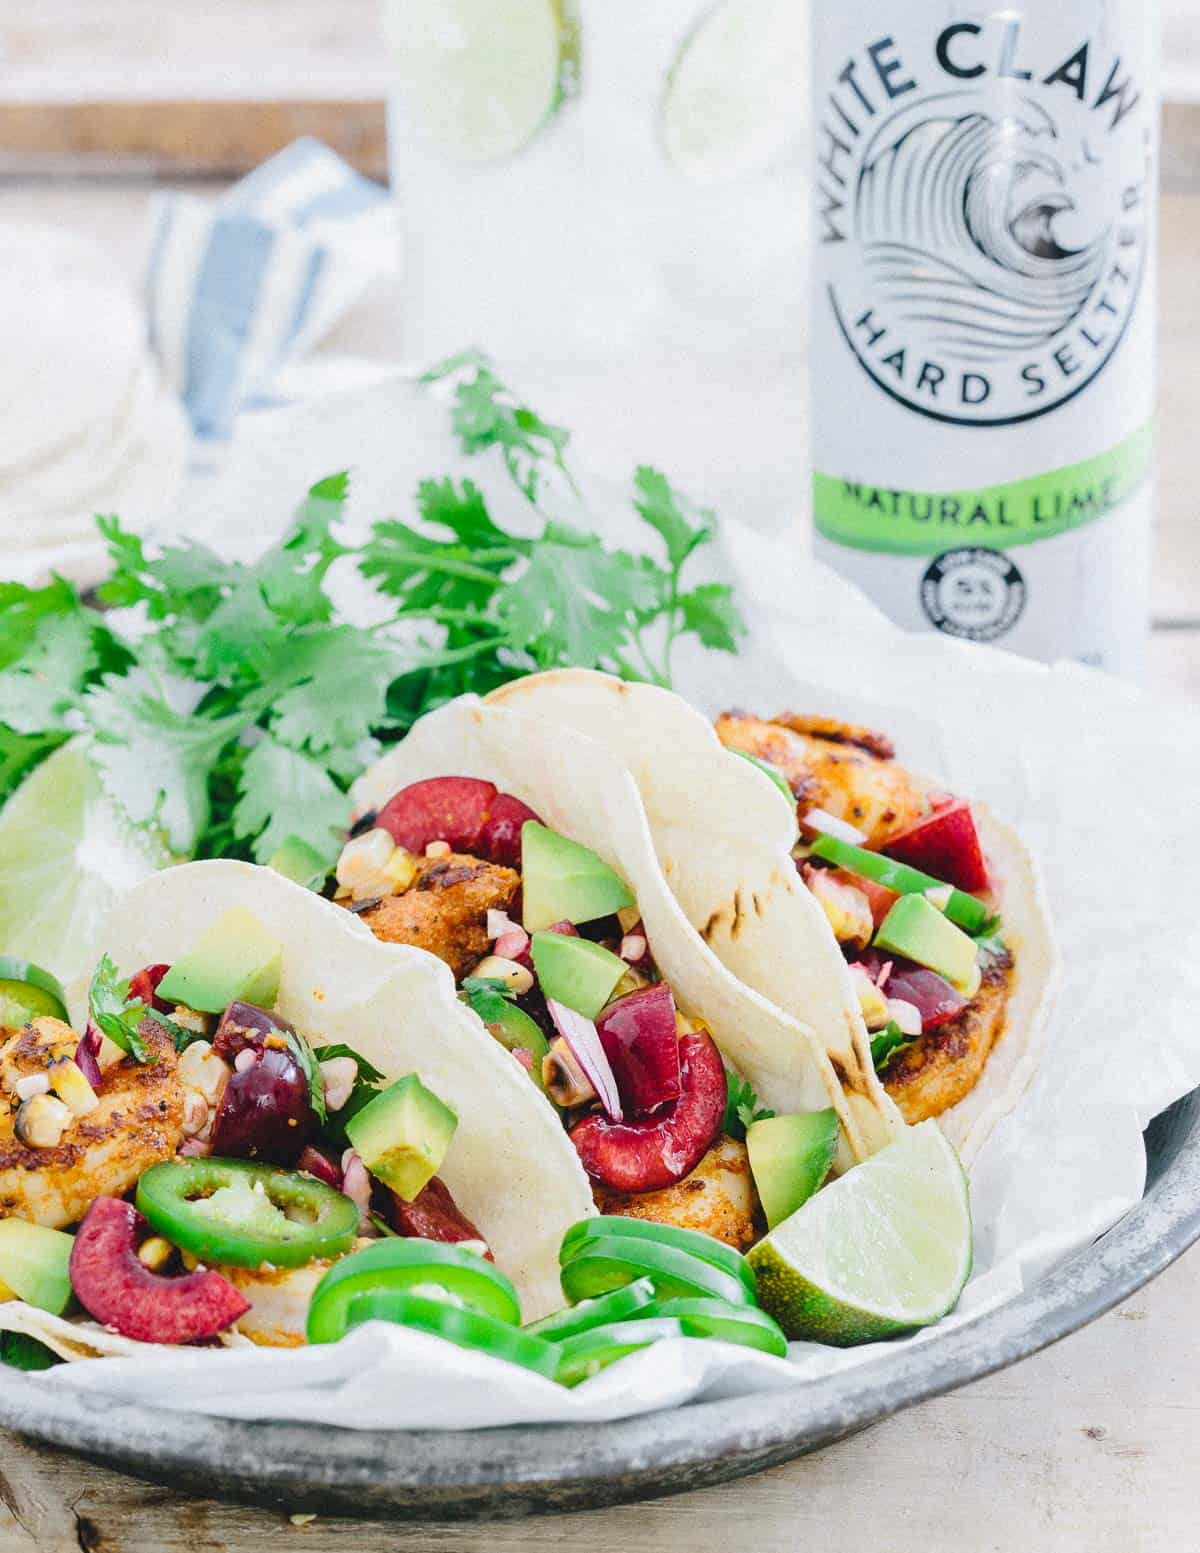 Blackened Shrimp Tacos with Grilled Corn Cherry Salsa is a simple summer meal packed with flavor.